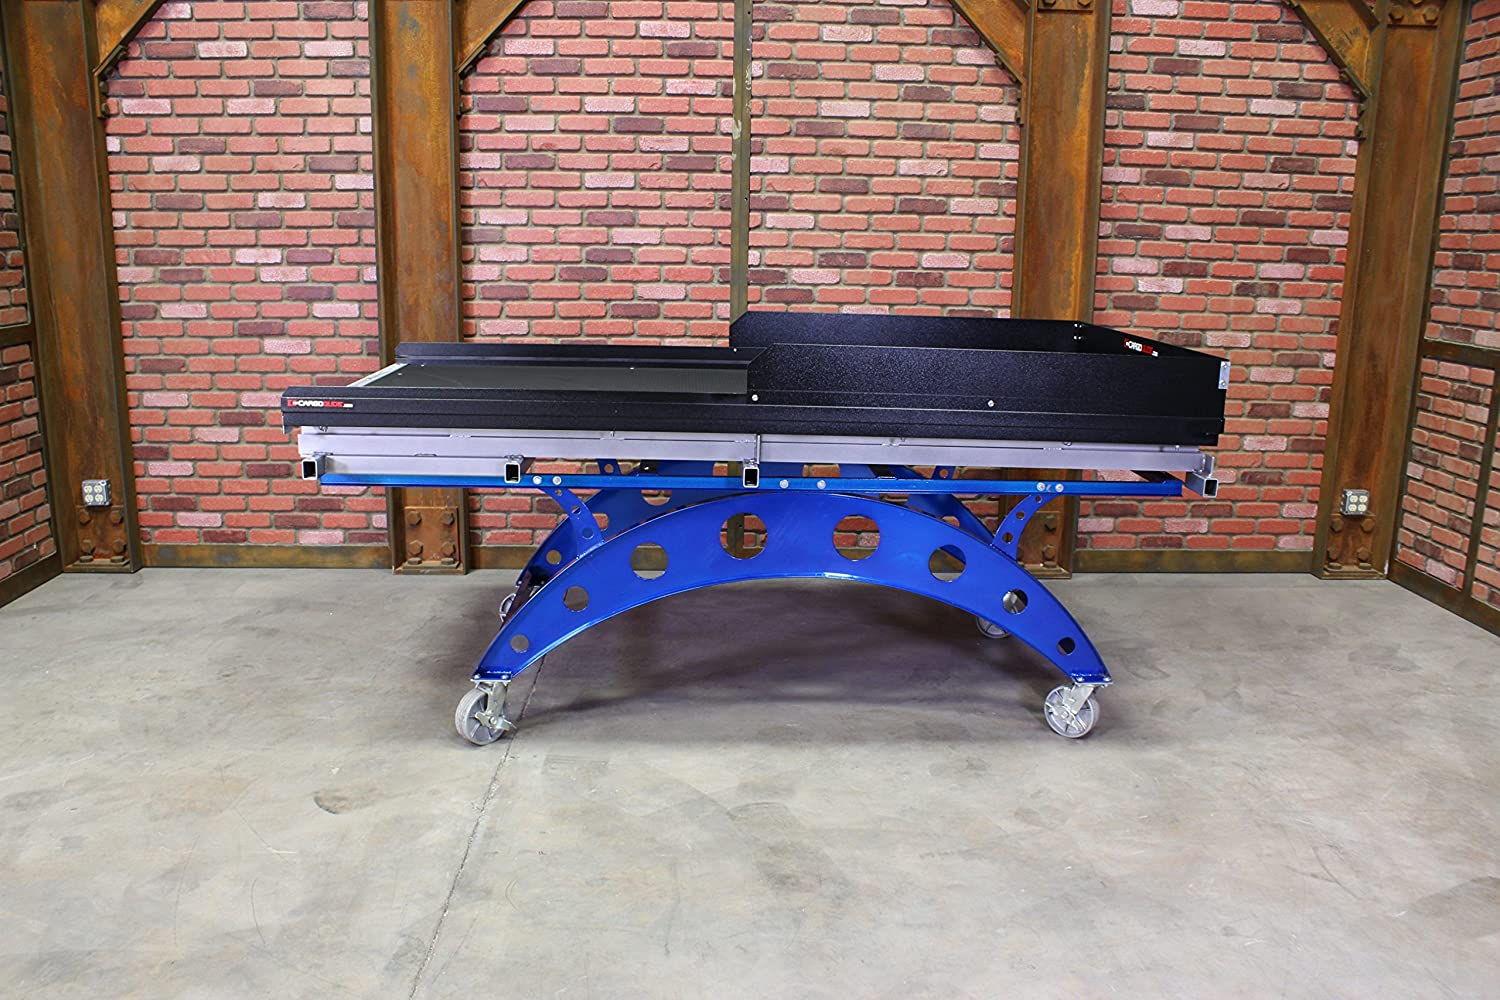 CargoGlide CG2200XL-7548-LP Extension Slide Out Truck Bed Tray 2200 lb Capacity